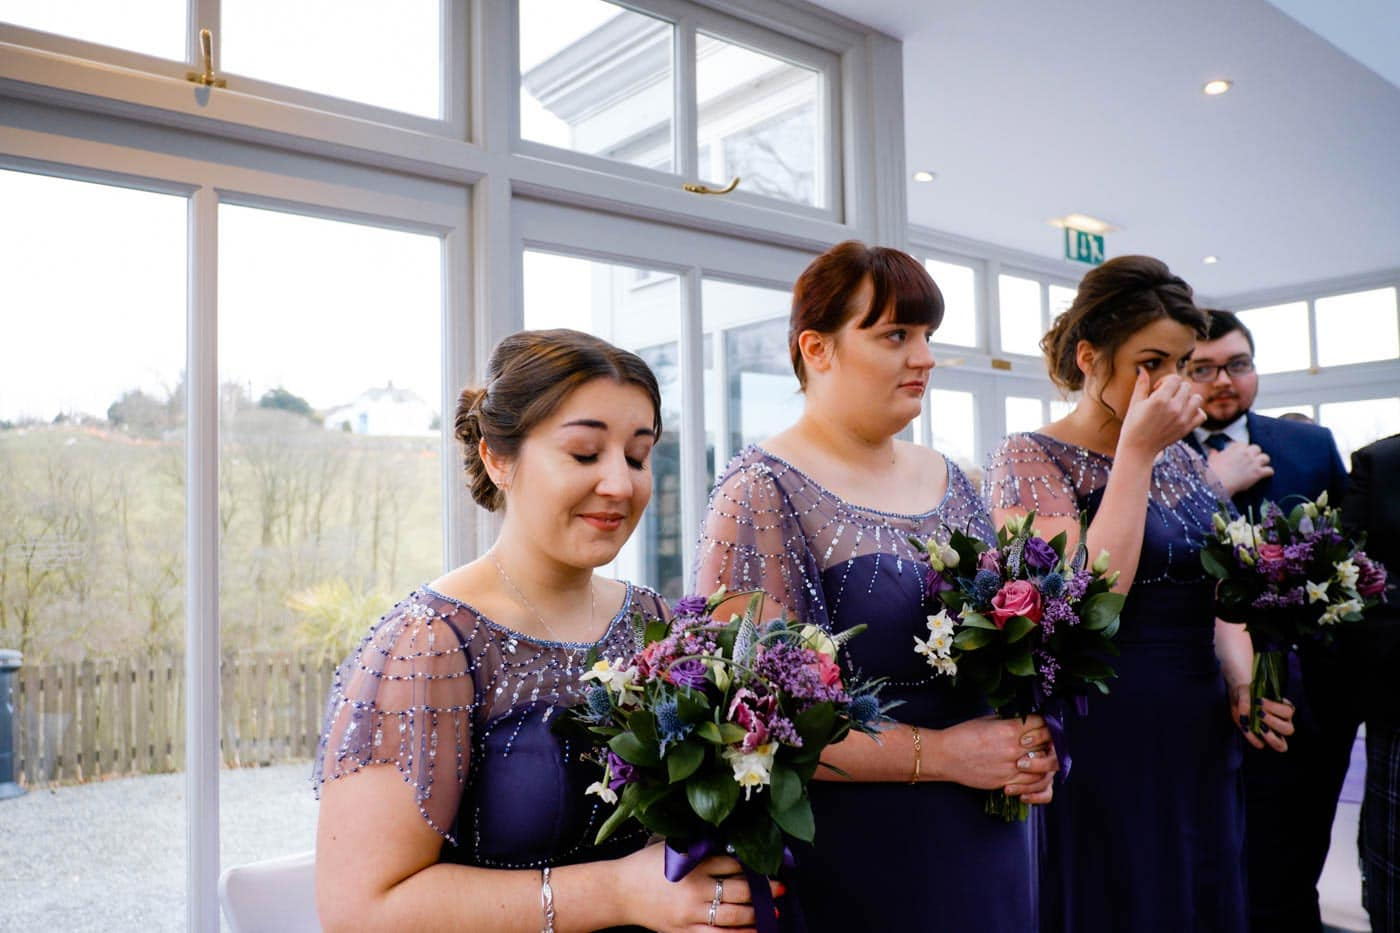 Emotional maids during the wedding ceremony at Broadoaks Country House